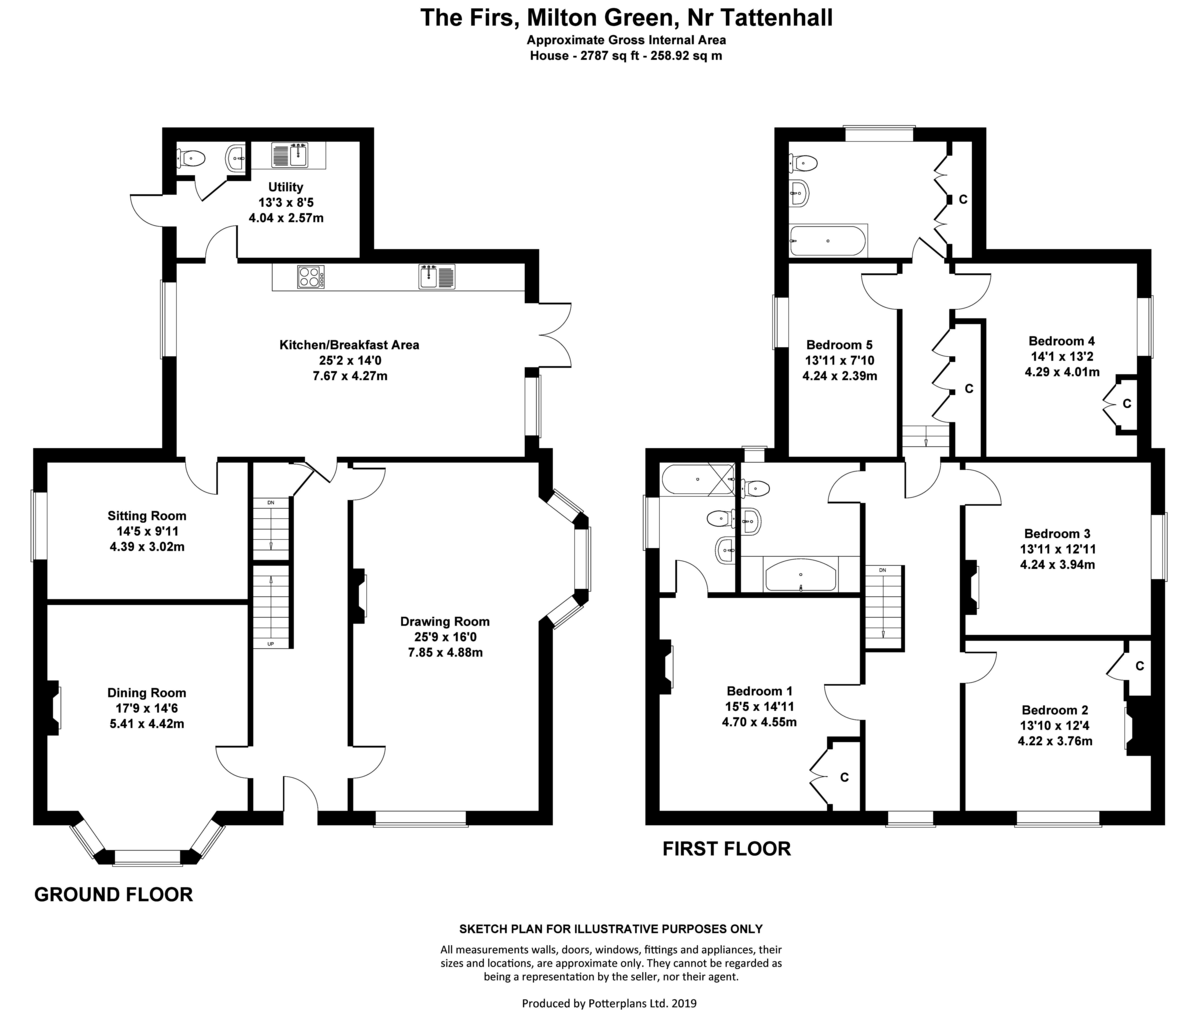 5 bed  for sale in Frog Lane, Tattenhall - Property Floorplan